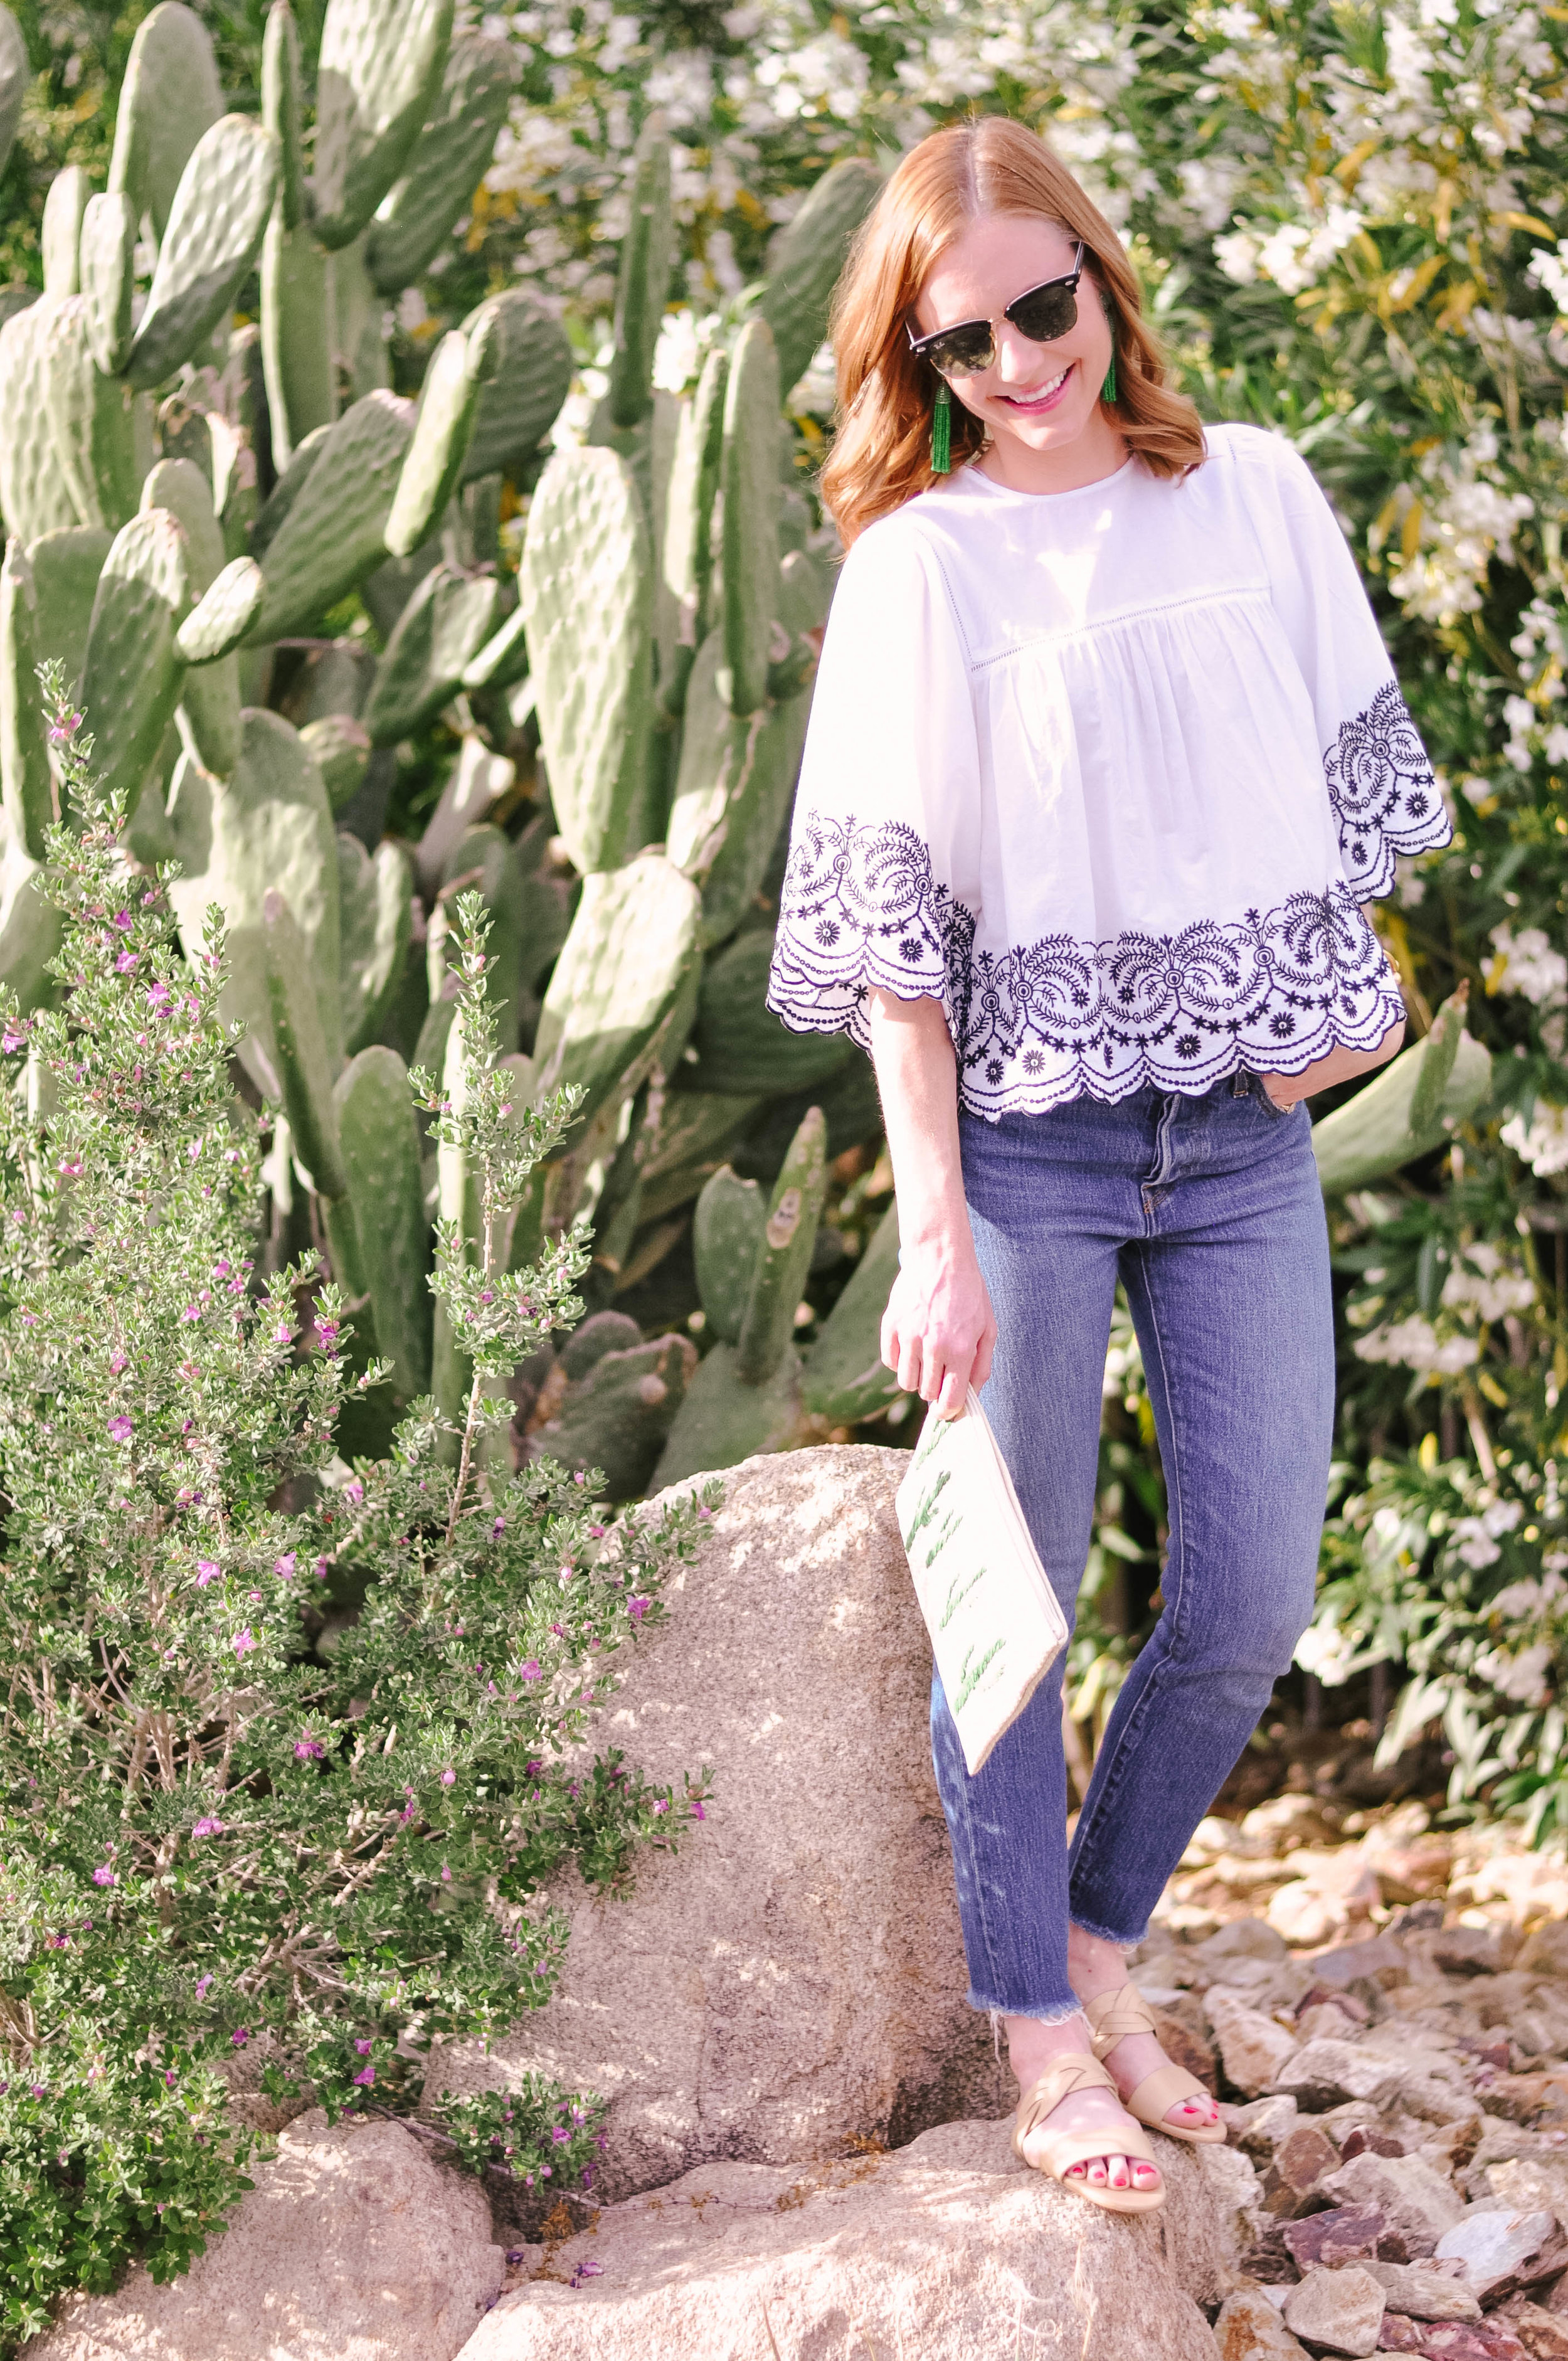 Woman in jeans and sunglasses next to cactus